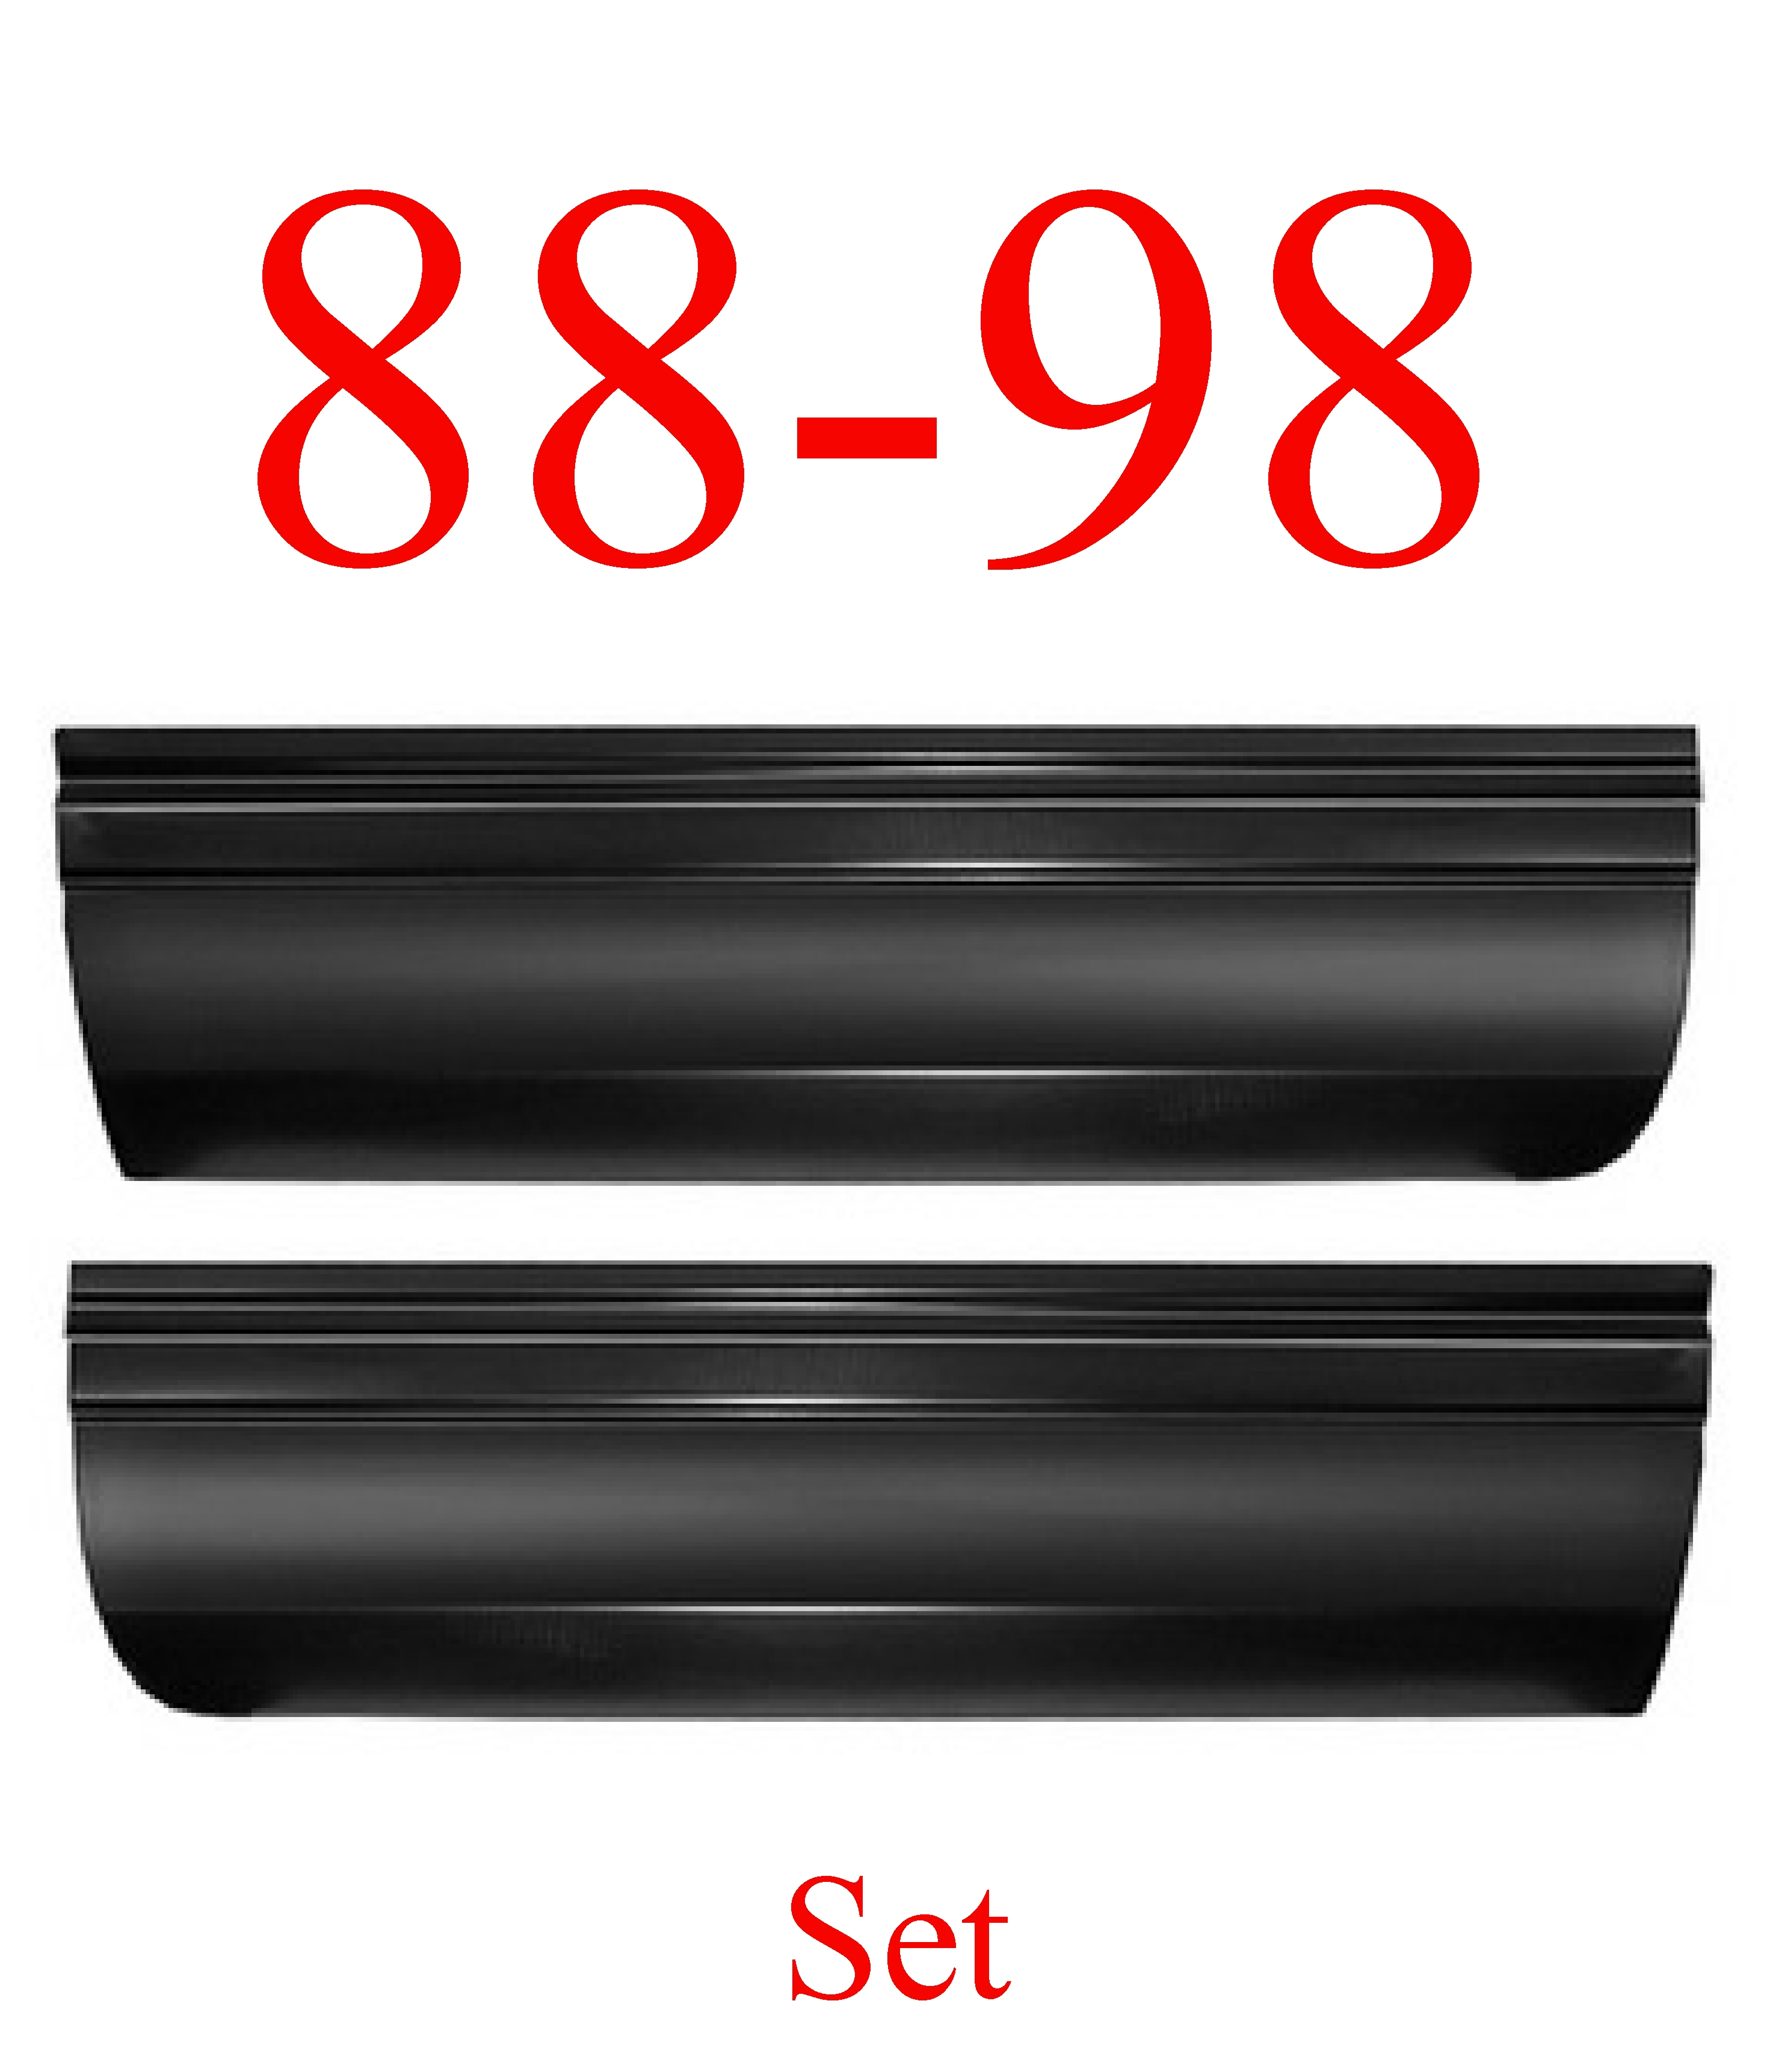 88-98 Front Lower Door Skin Panel SET